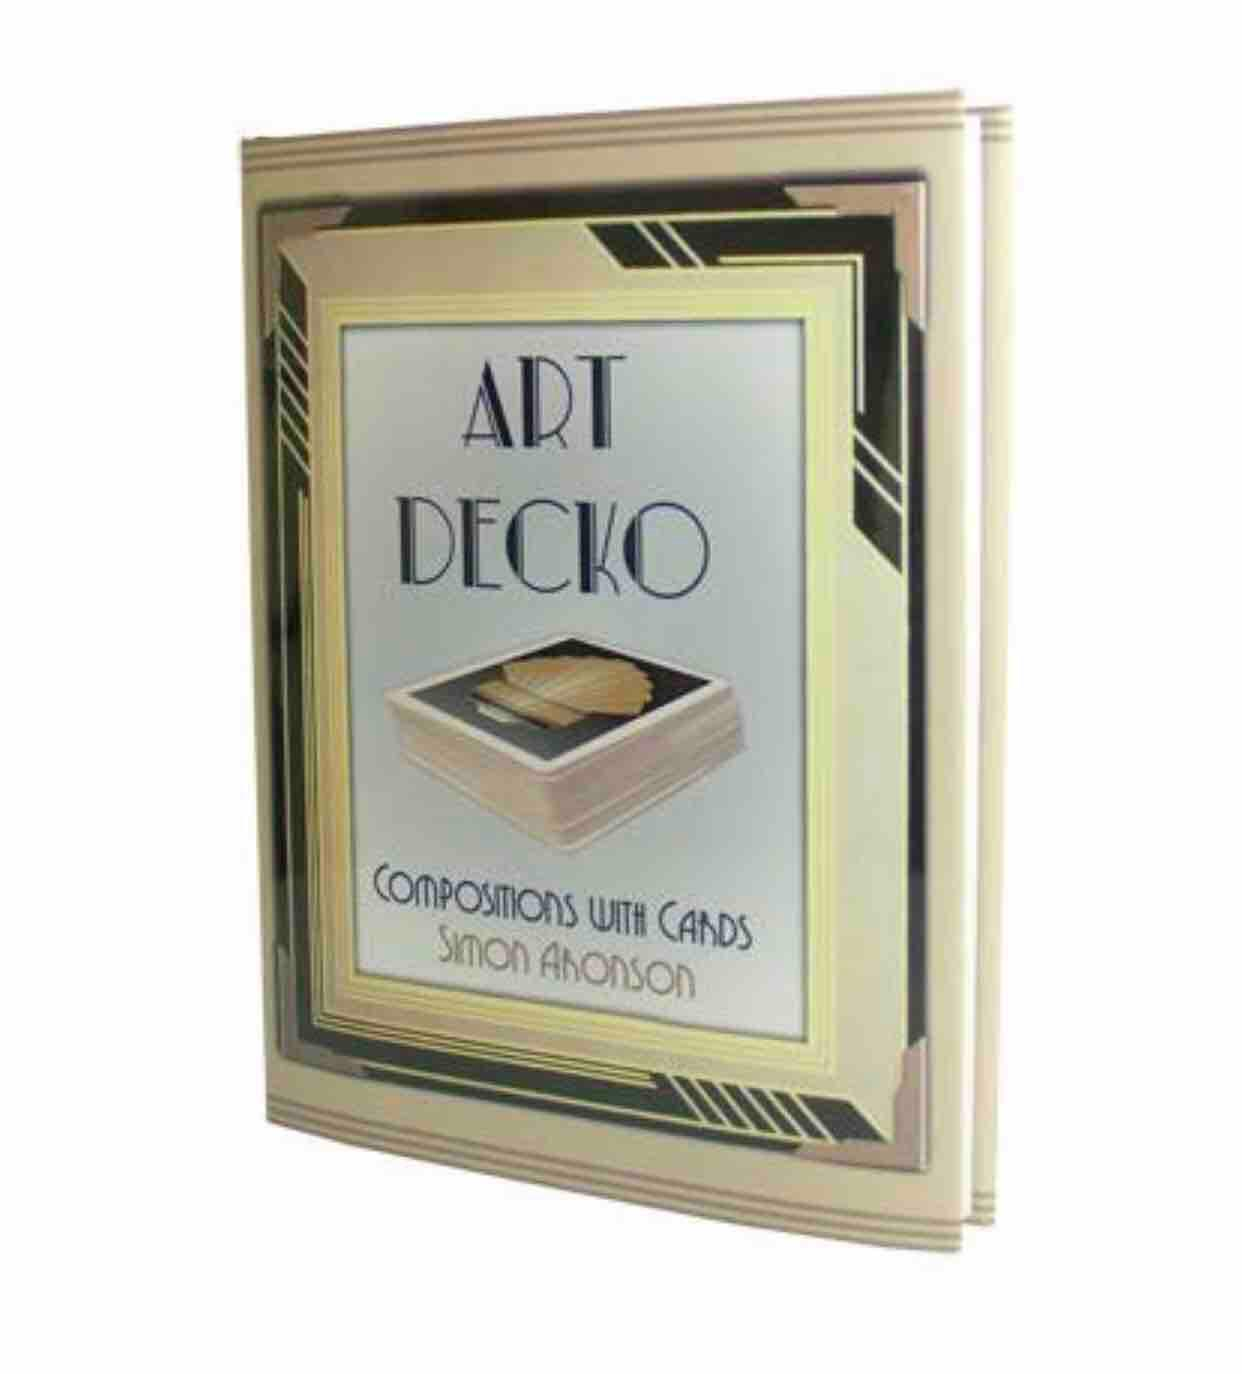 Art decko by Simon - card trick magic book